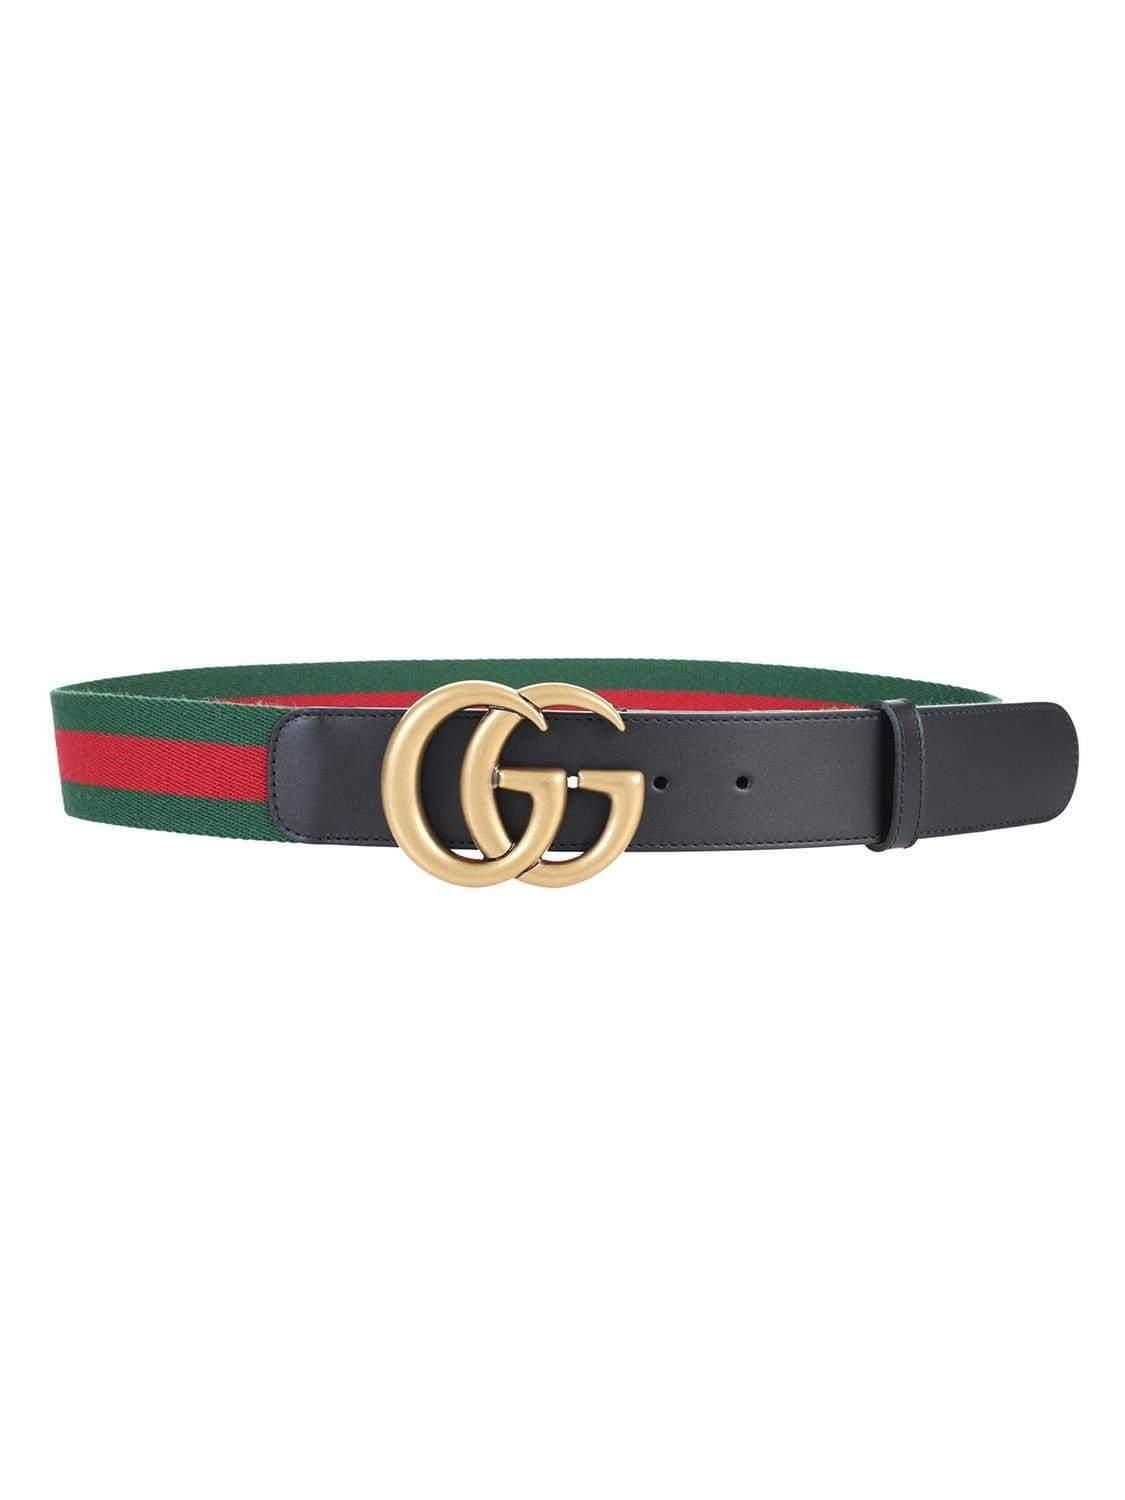 6696ff078f7 Gucci Green   Red Web Gg Belt in Green - Save 2% - Lyst